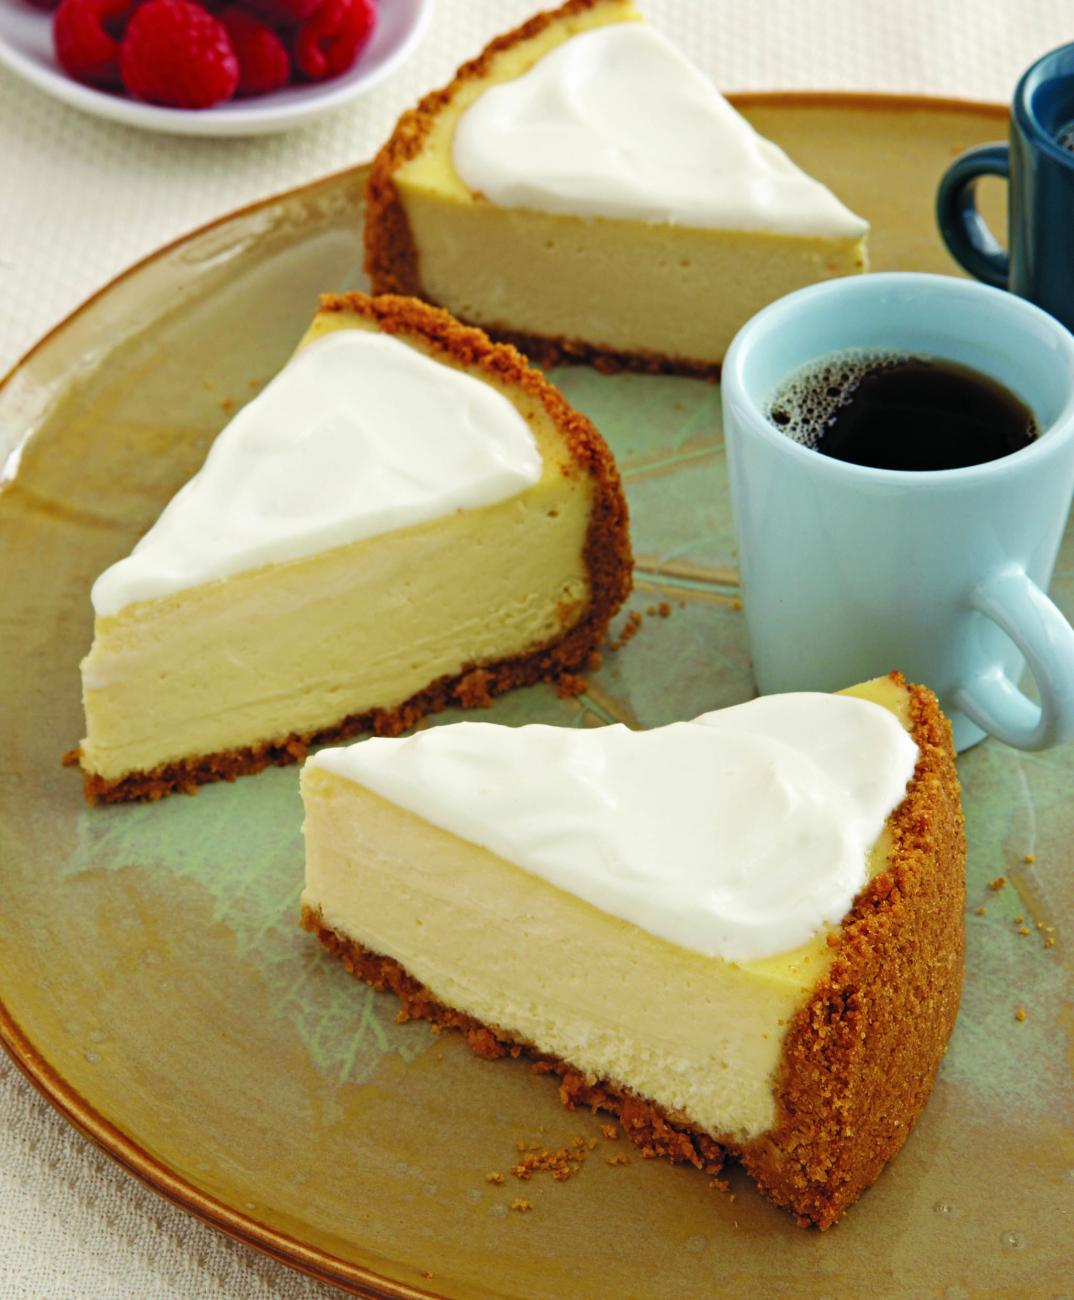 Recipe for Creamy New York–Style Cheesecake